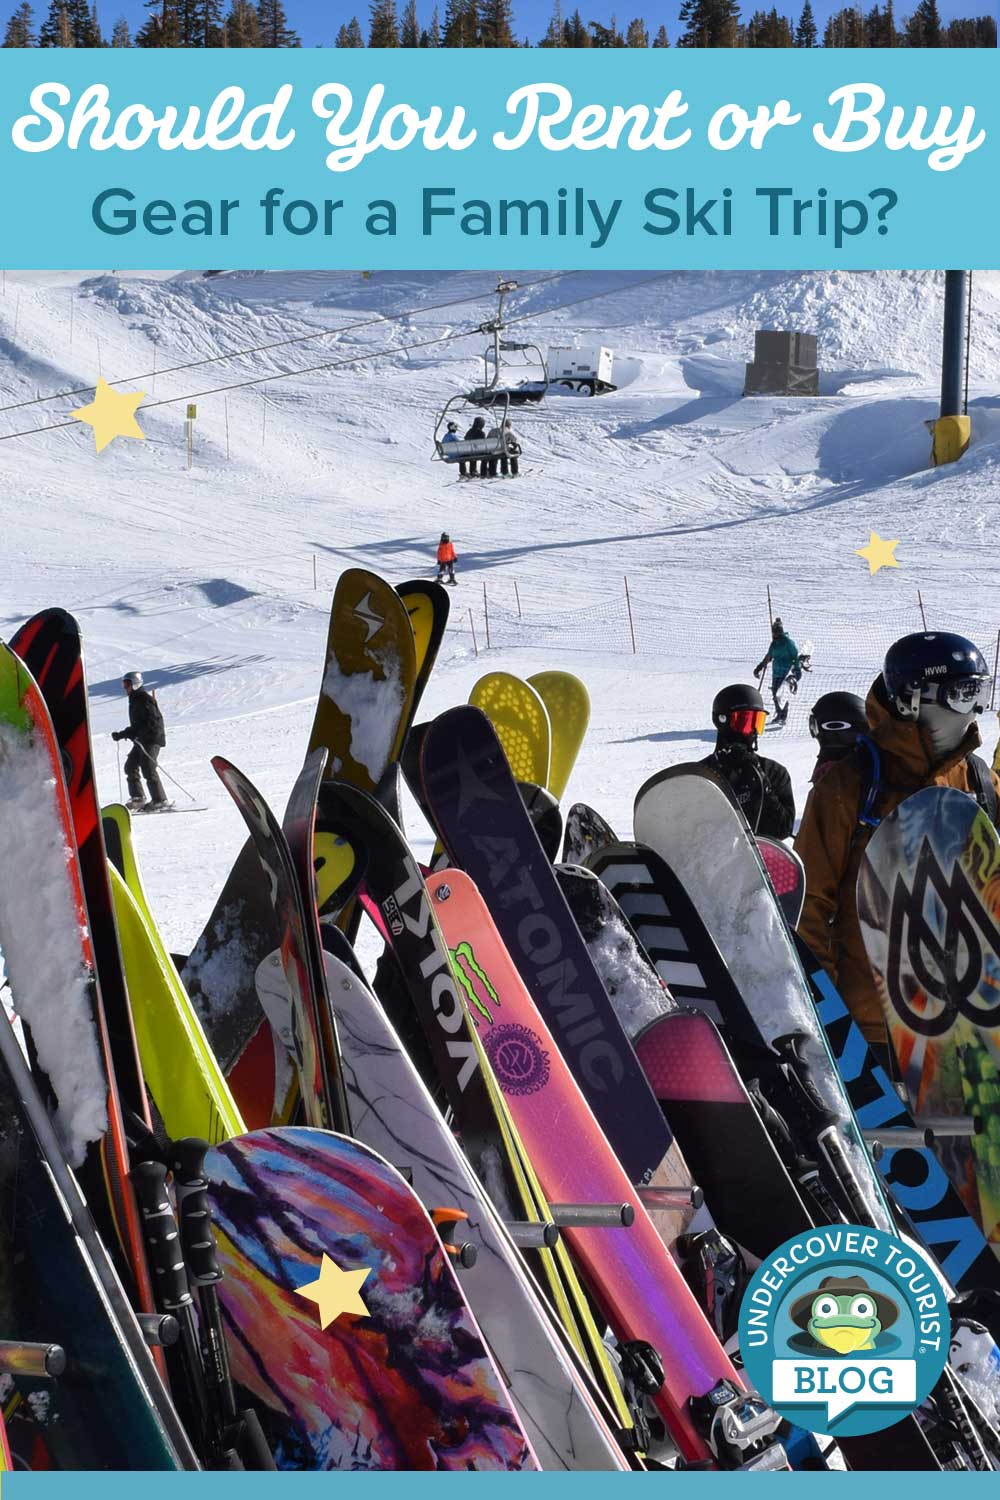 63f7d7748416 Should You Rent or Buy Ski Equipment